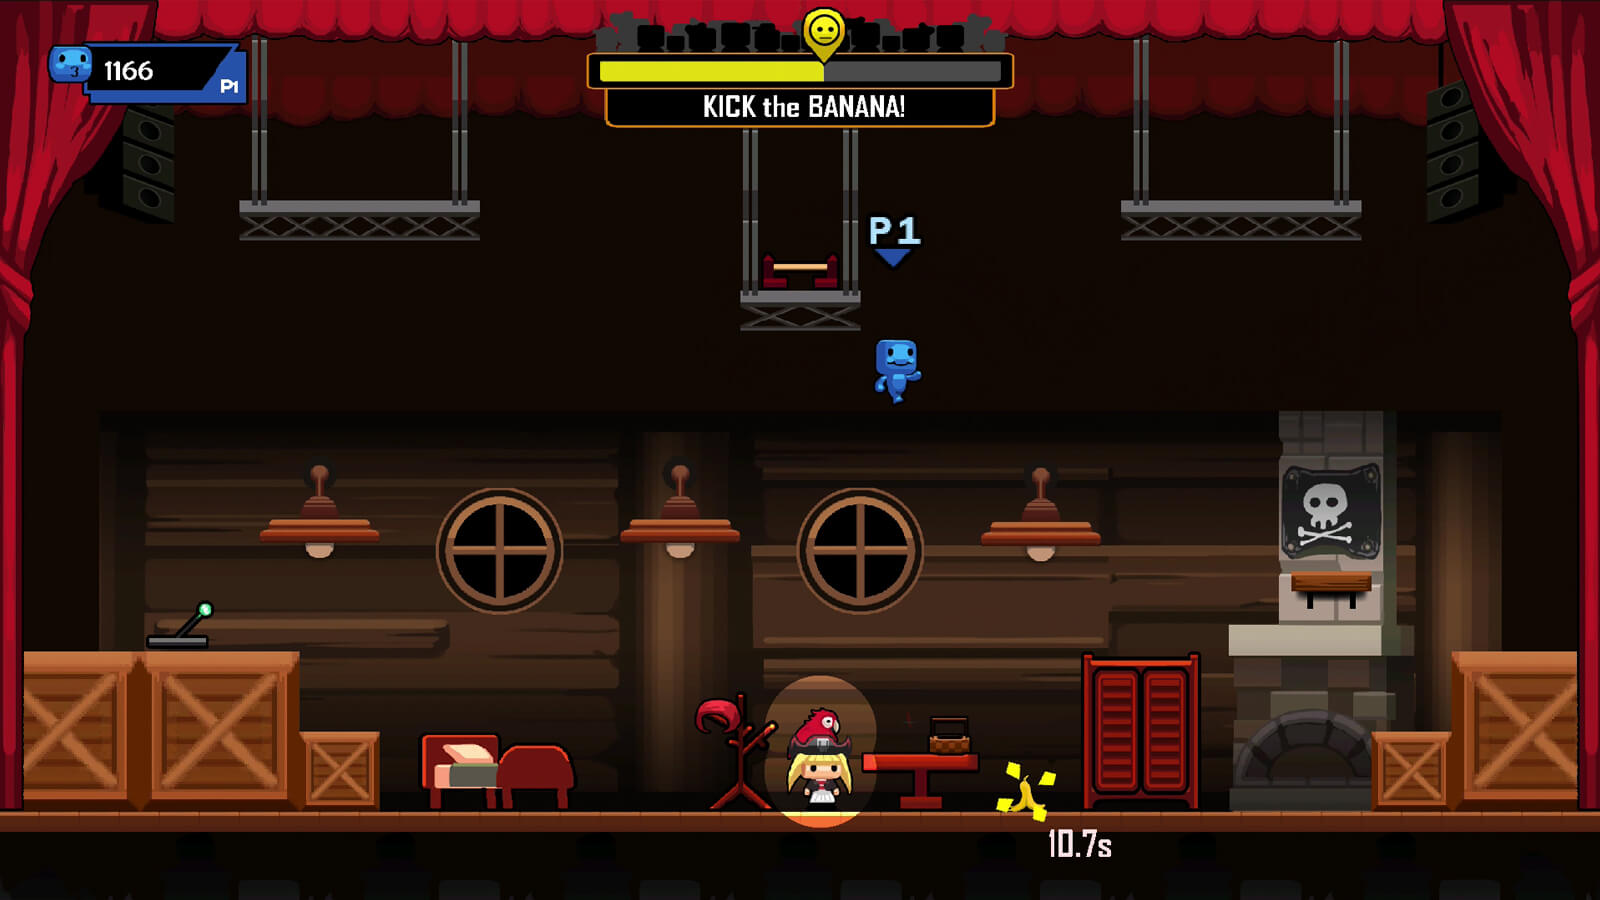 A blue player character leaps down onto a stage setting a pirate scene hoping to kick a banana